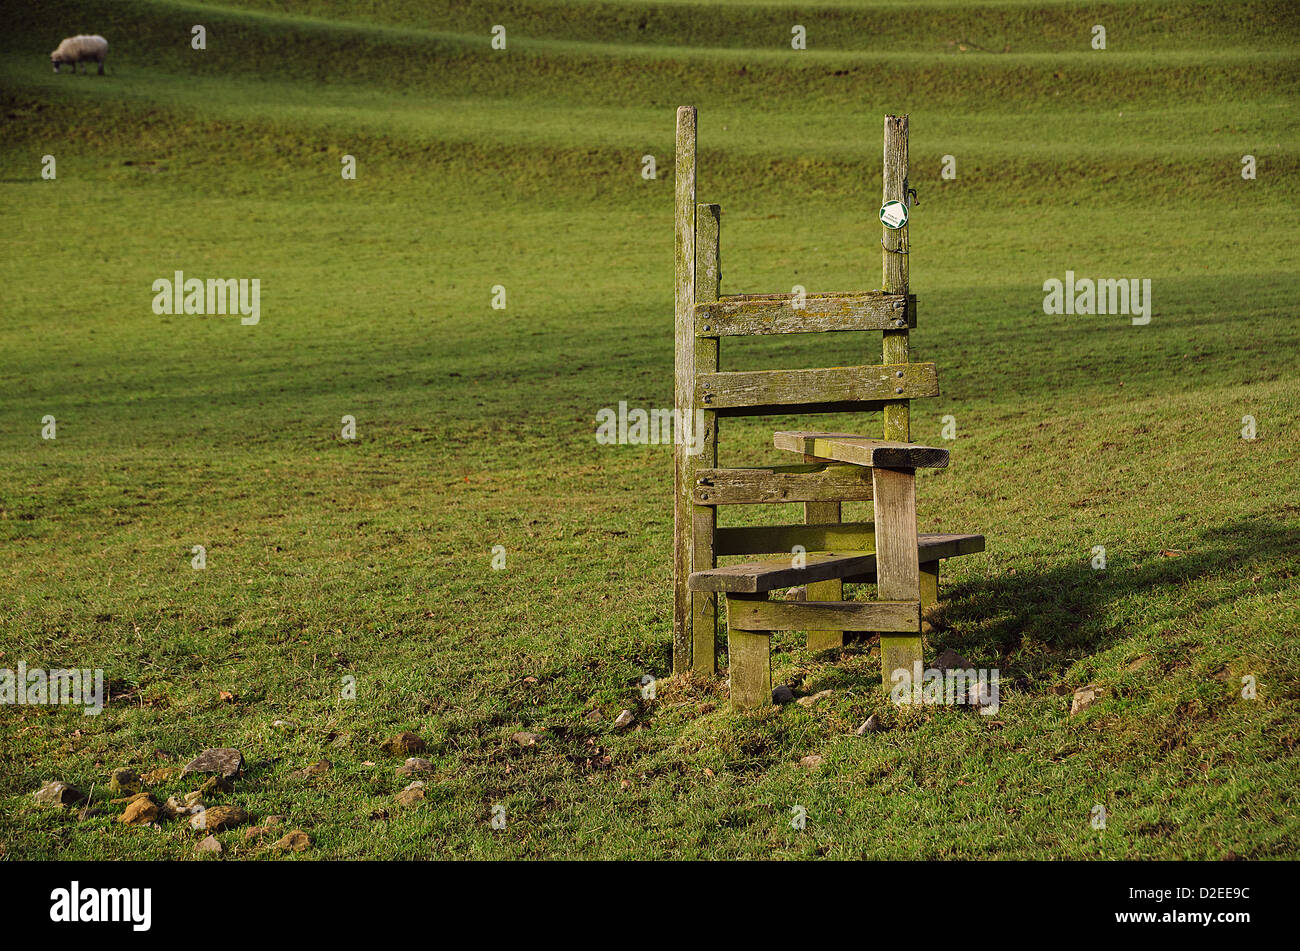 A wooden style but with no fence to cross! - Stock Image